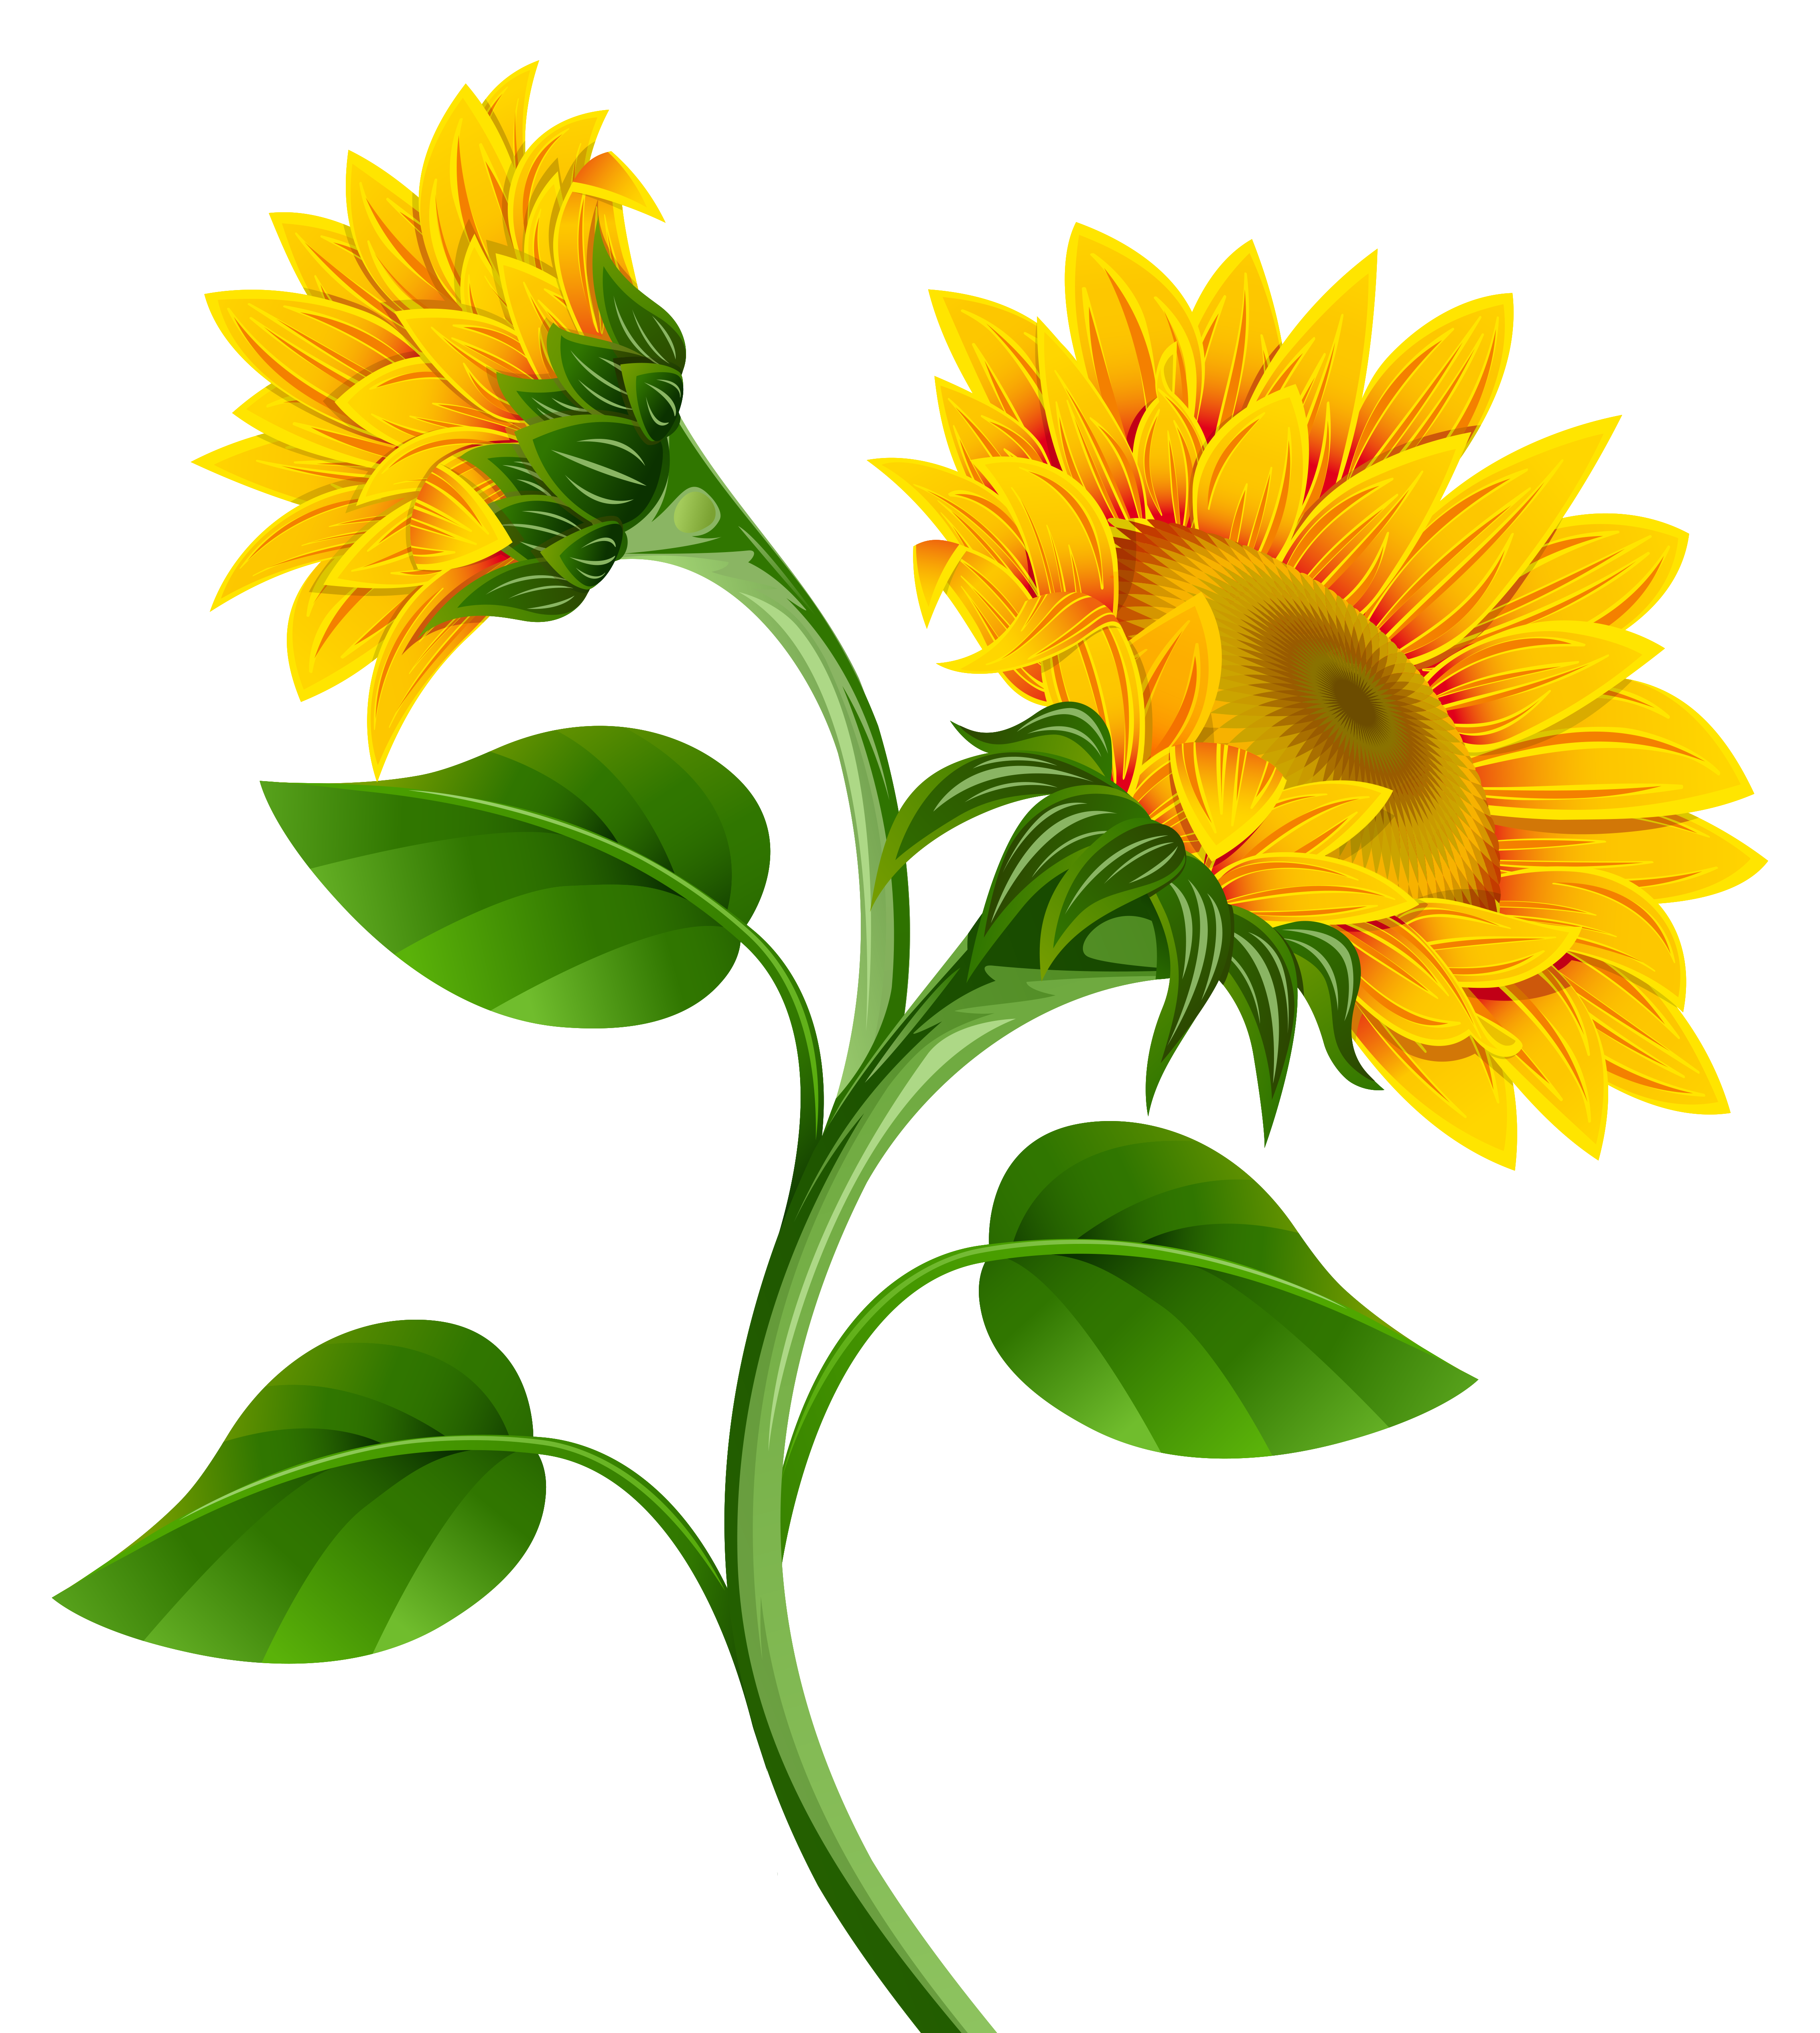 4563x5096 Sunflowers Clipart Image Gallery Yopriceville High